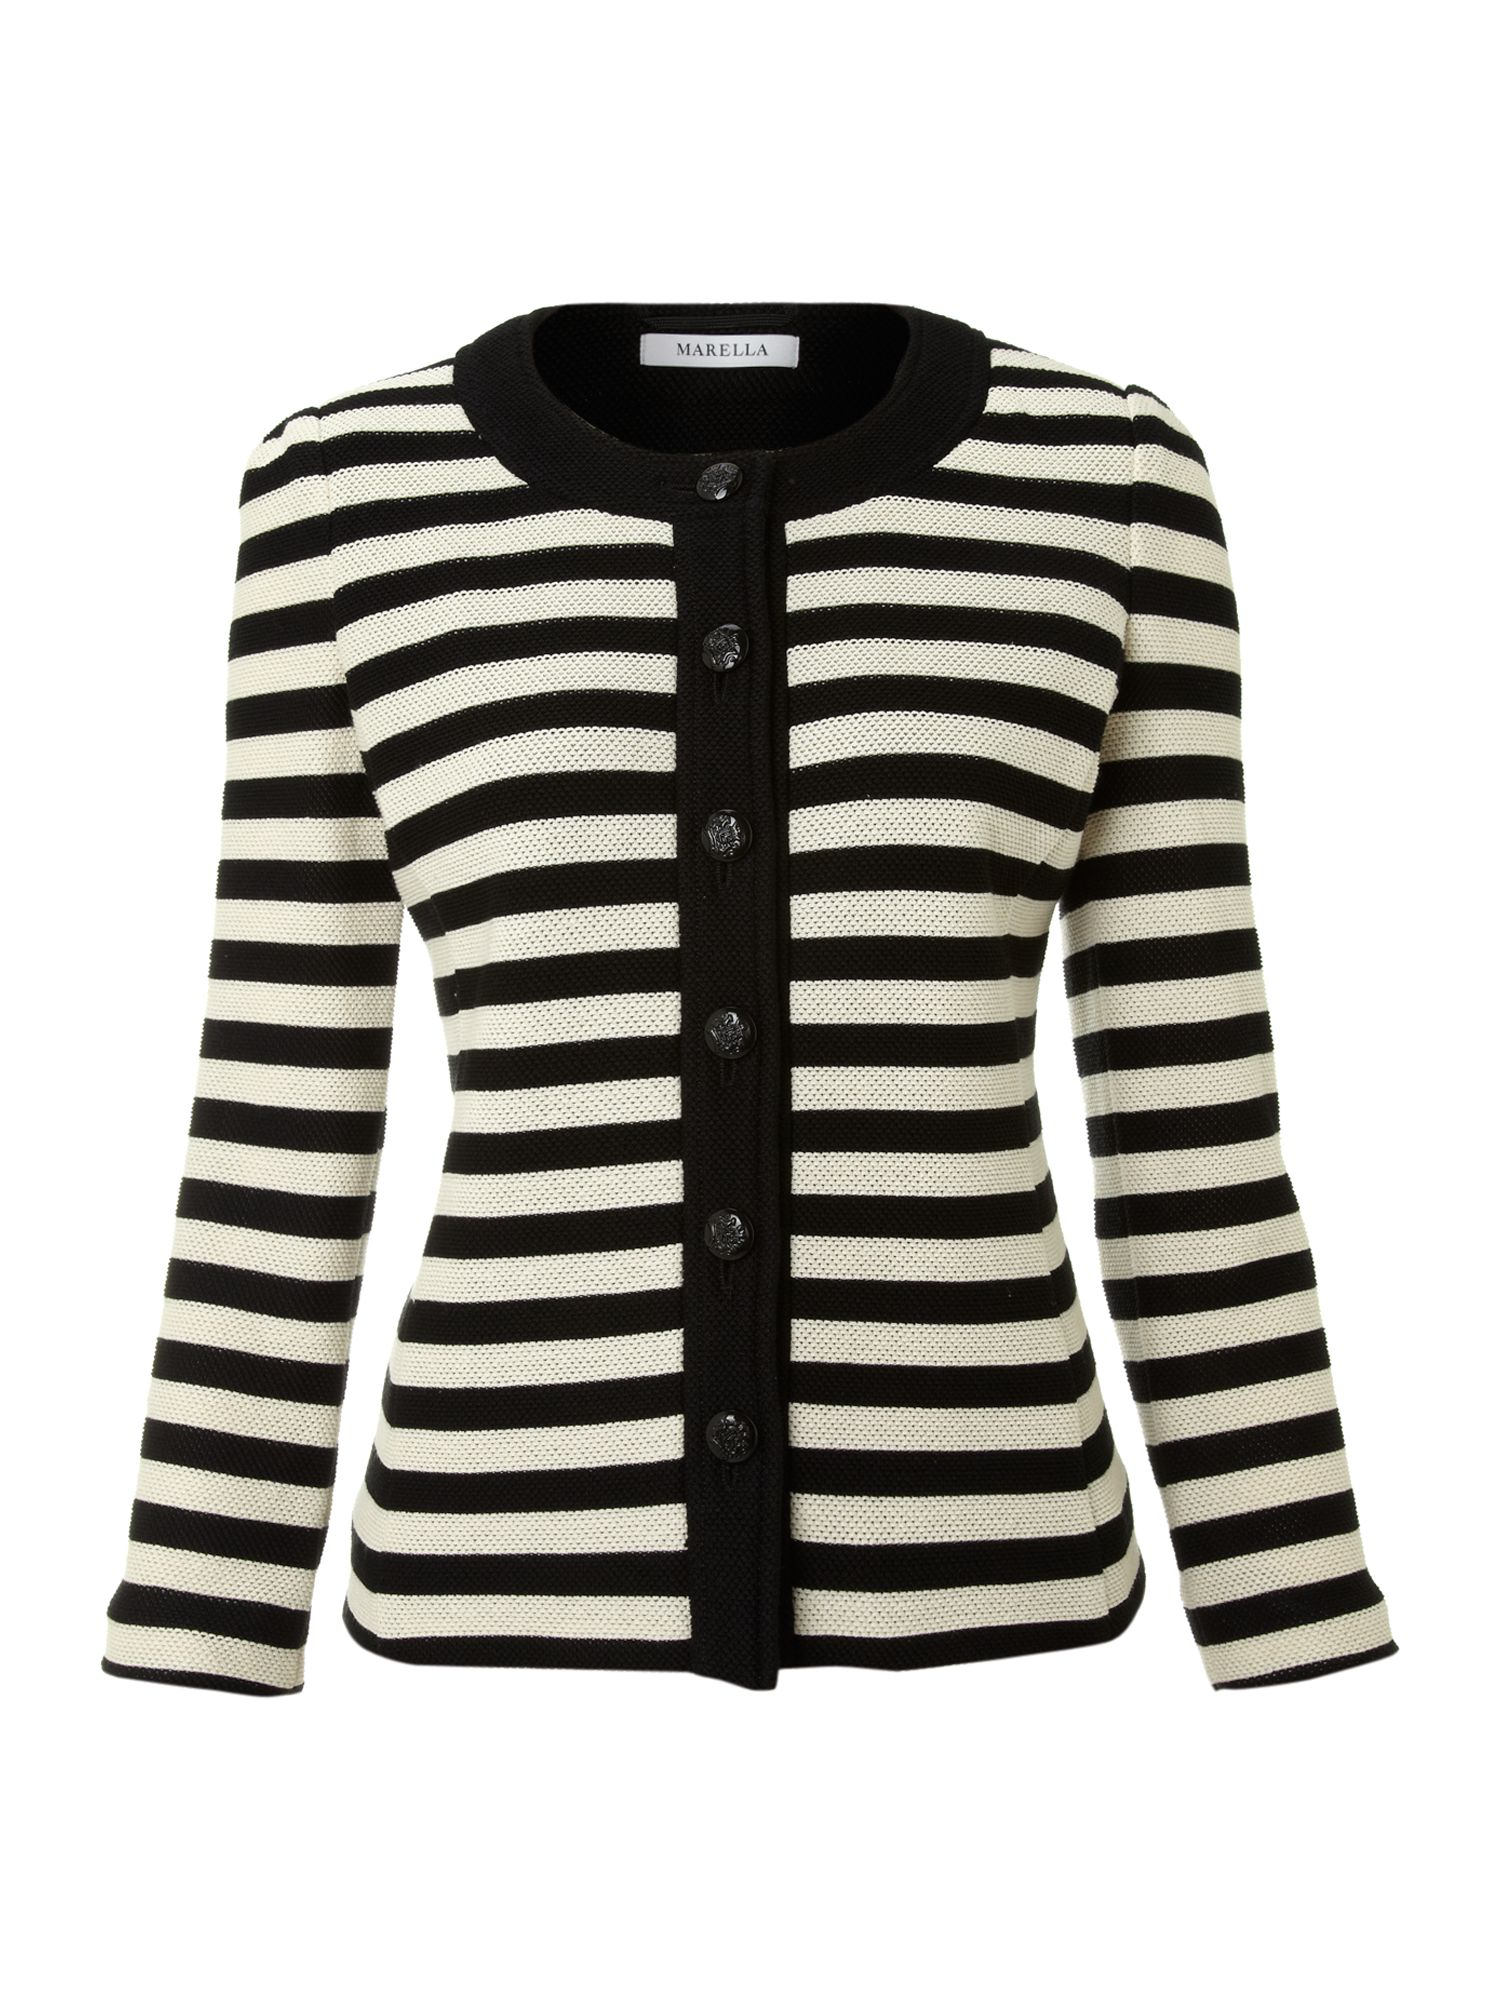 Marco striped jacket